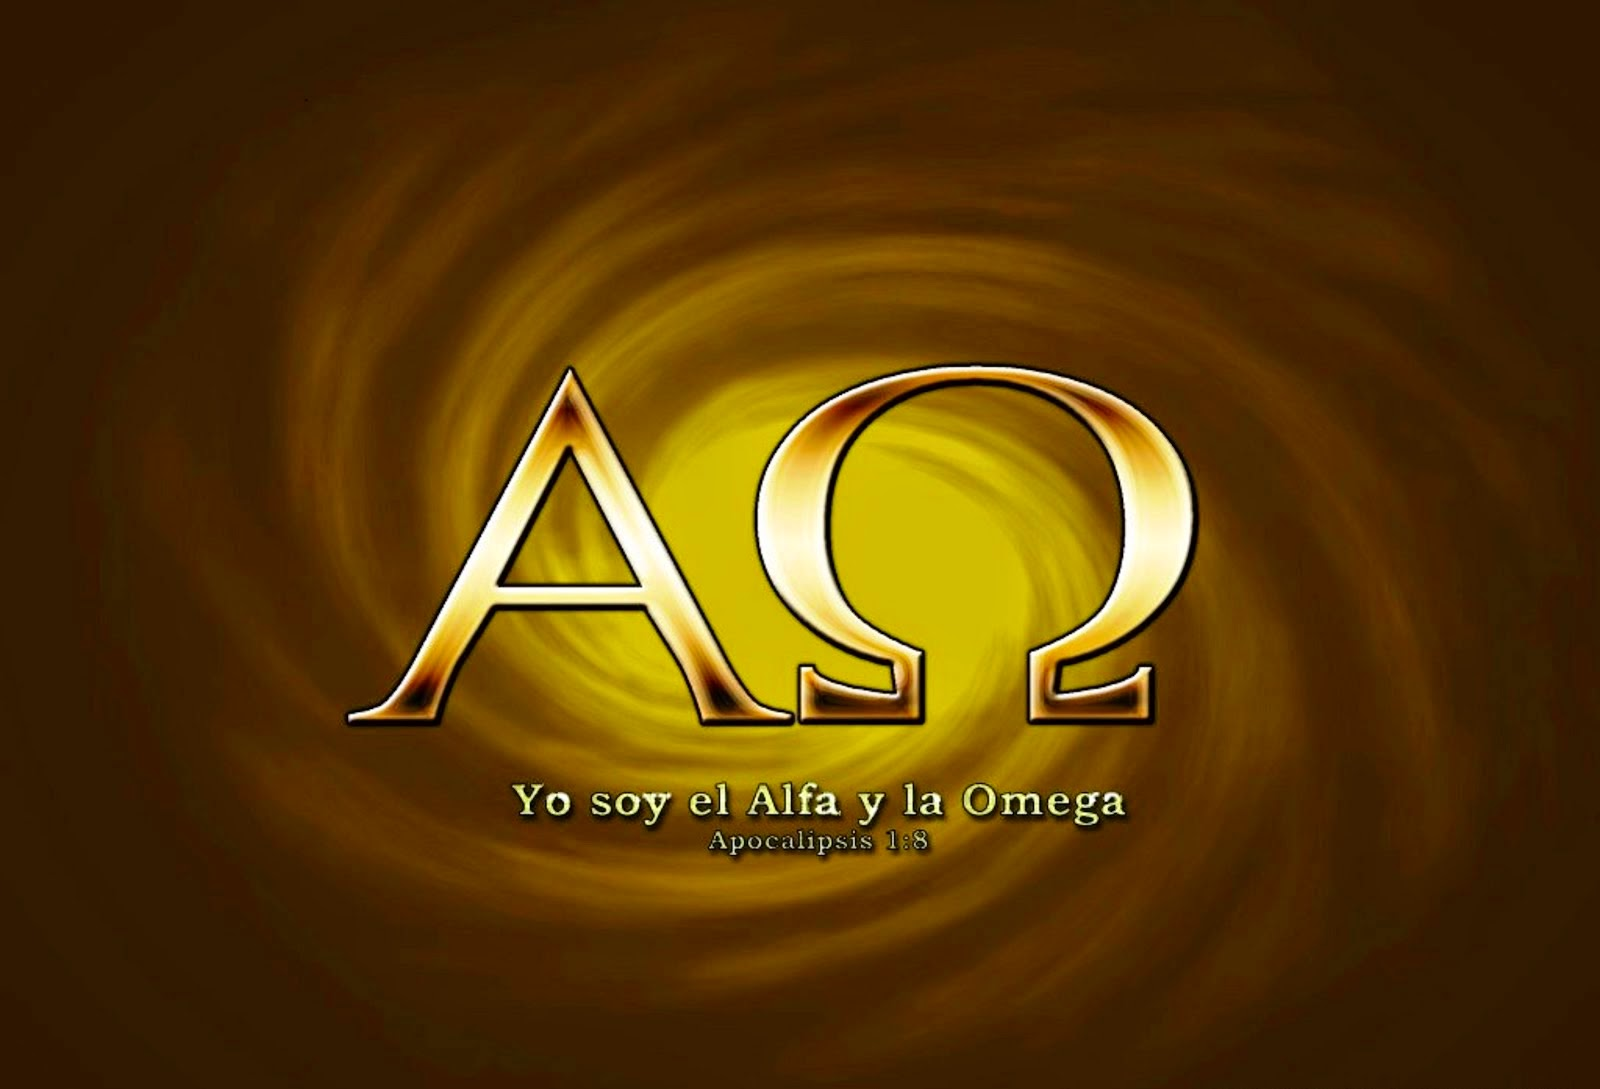 I'AM THE ALPHA AND THE OMEGA